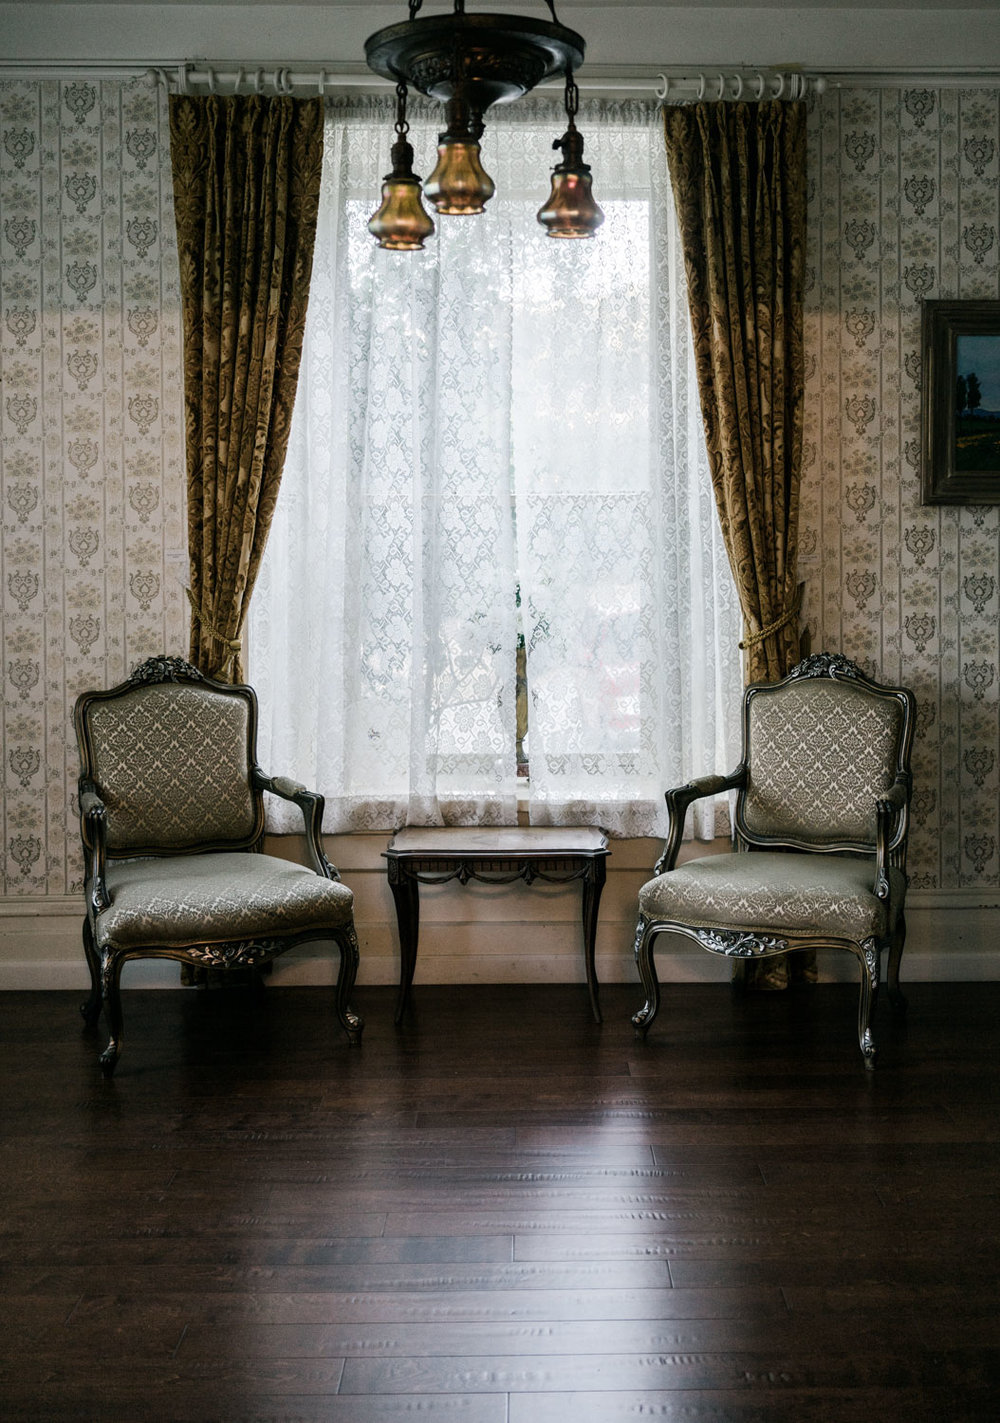 Elliston Vineyard Interiors are a perfect backdrop for bride and groom's portrait. Make sure you book the room with piano though. They are pretty strict about which room you can use to photograph unless you have booked it beforehand.